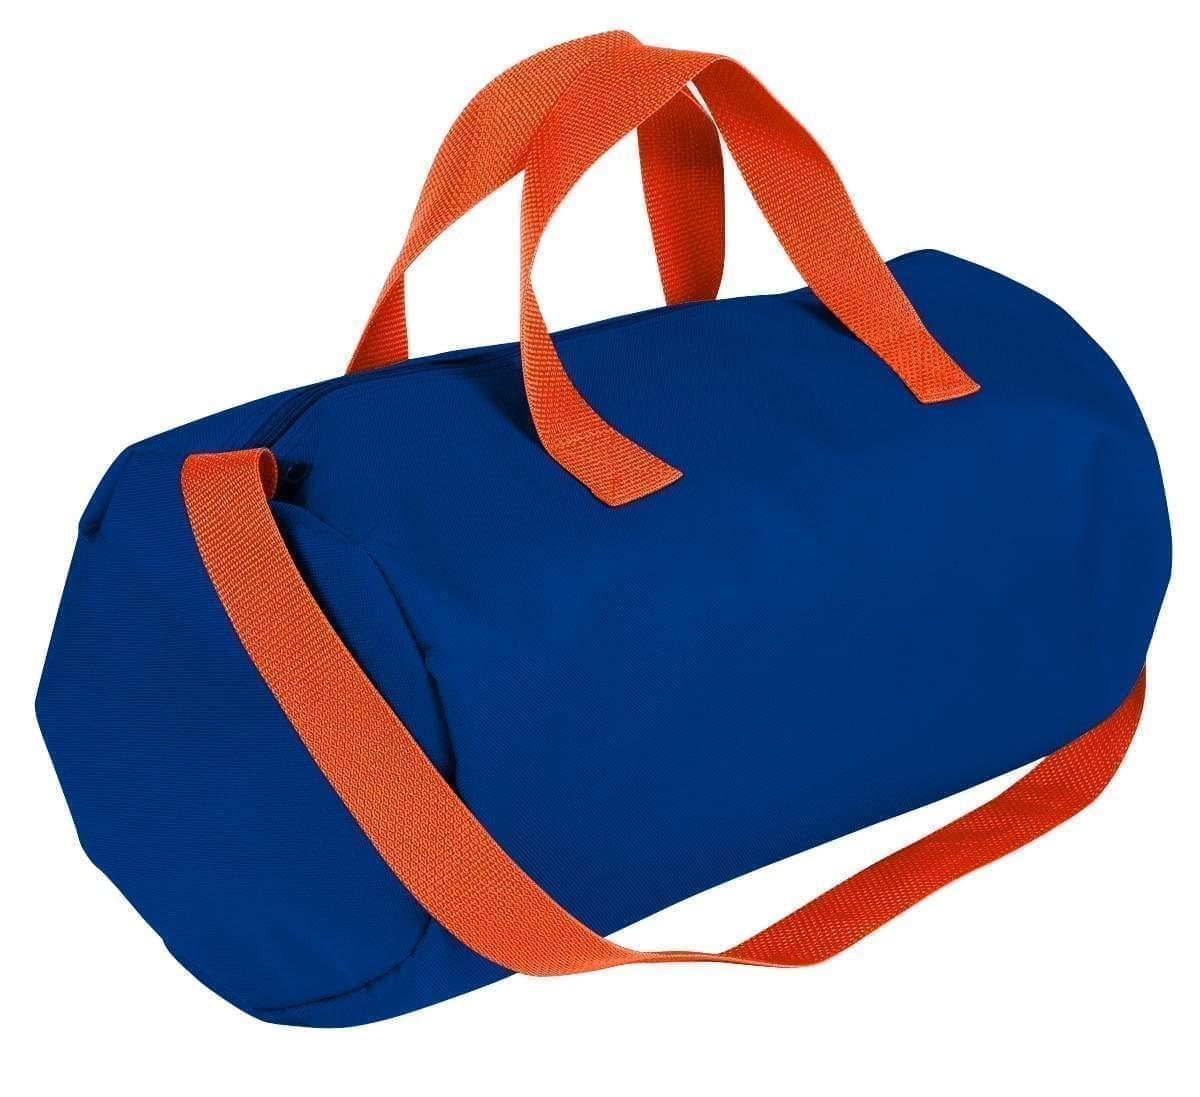 USA Made Nylon Poly Gym Roll Bags, Royal Blue-Orange, ROCX31AA00